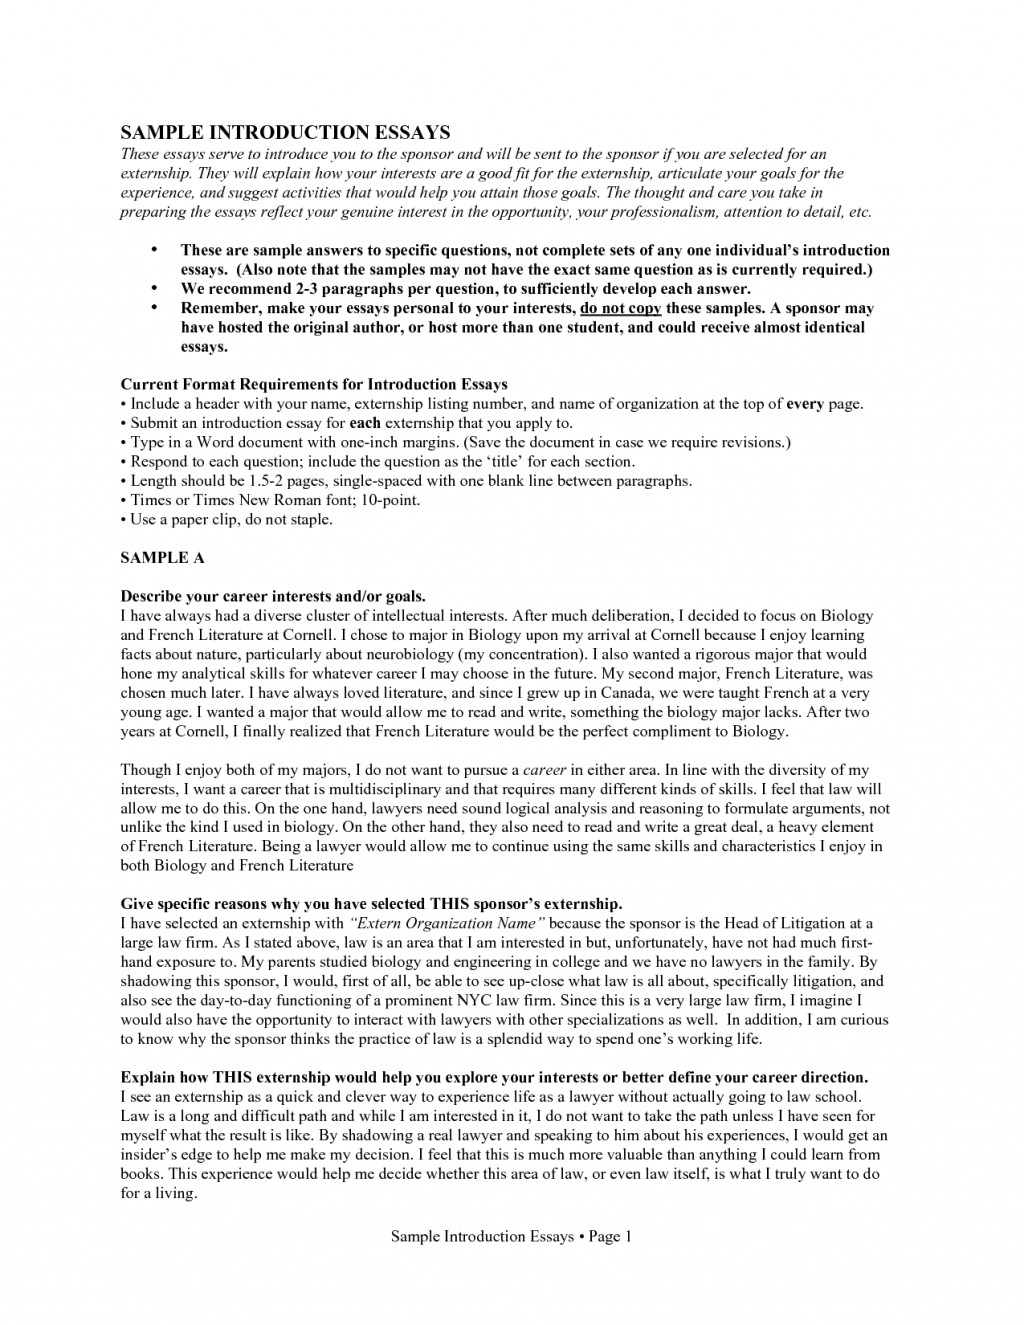 008 Introduction Self Essay About Your Discipline X Jpg How To Write An 8vvv9 Introduce Myself Writing Rare For Job Application Samples Large